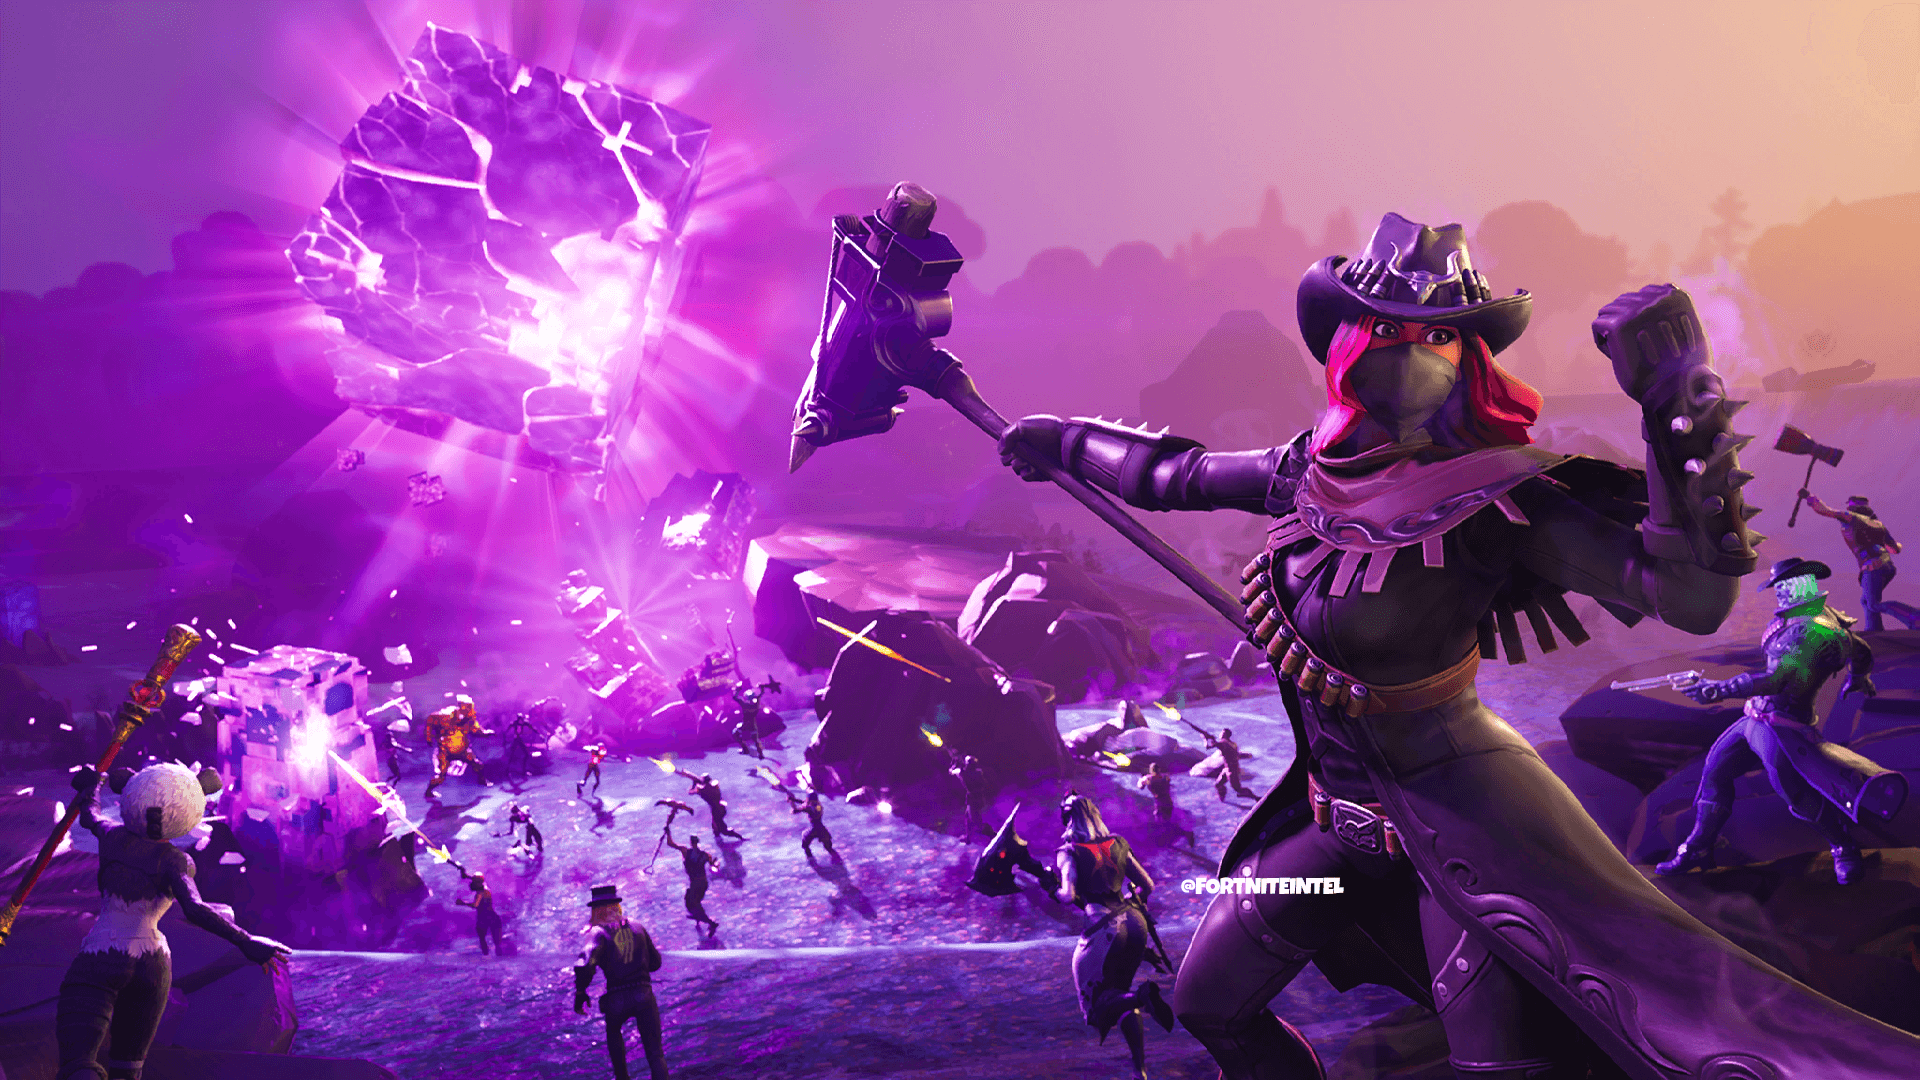 Fortnite Season 6 Week 7 loading screen leaked | Fortnite INTEL